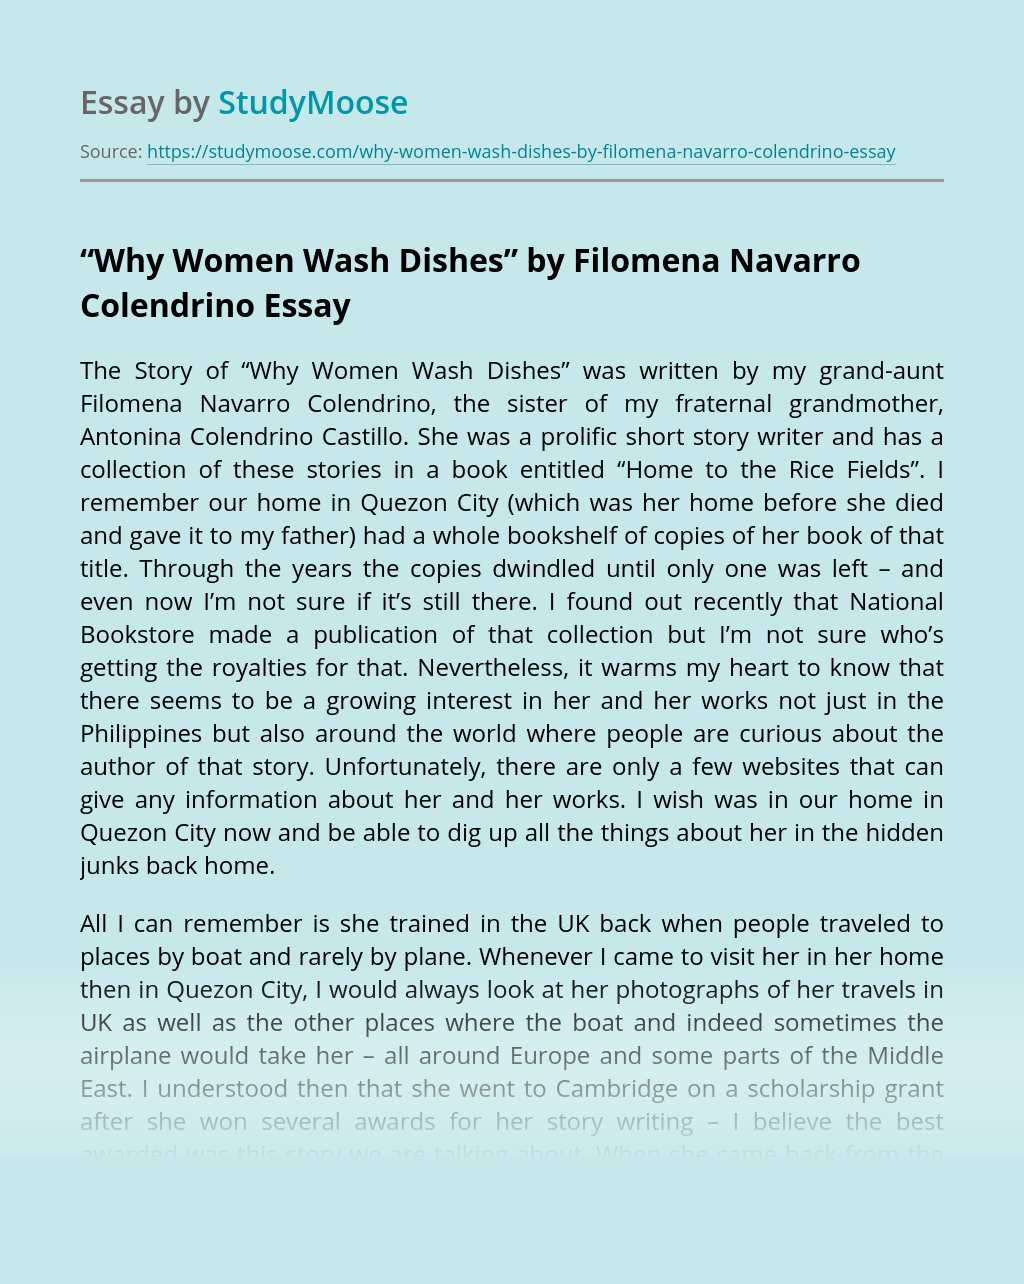 """Why Women Wash Dishes"" by Filomena Navarro Colendrino"